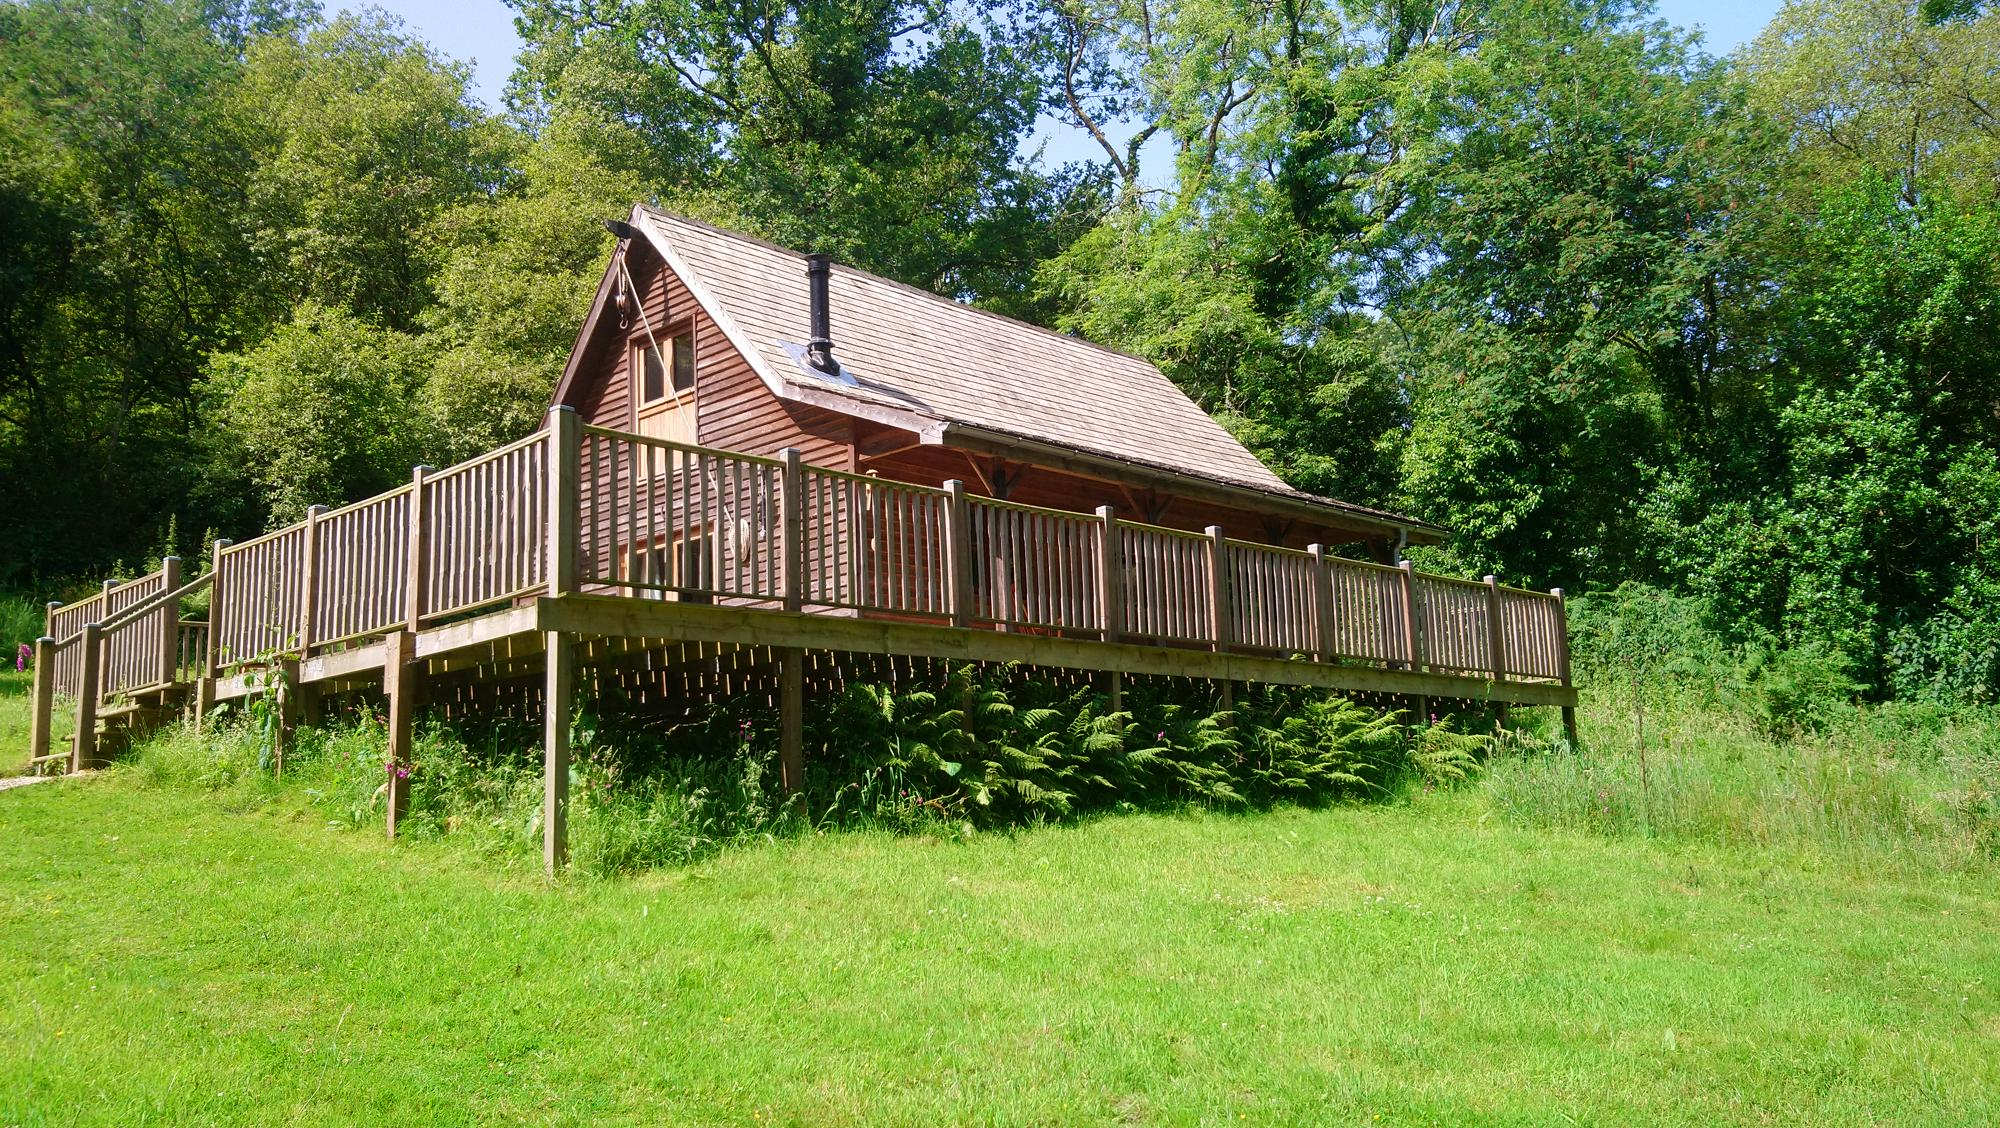 Self-Catering in Lyme Regis holidays at Cool Places